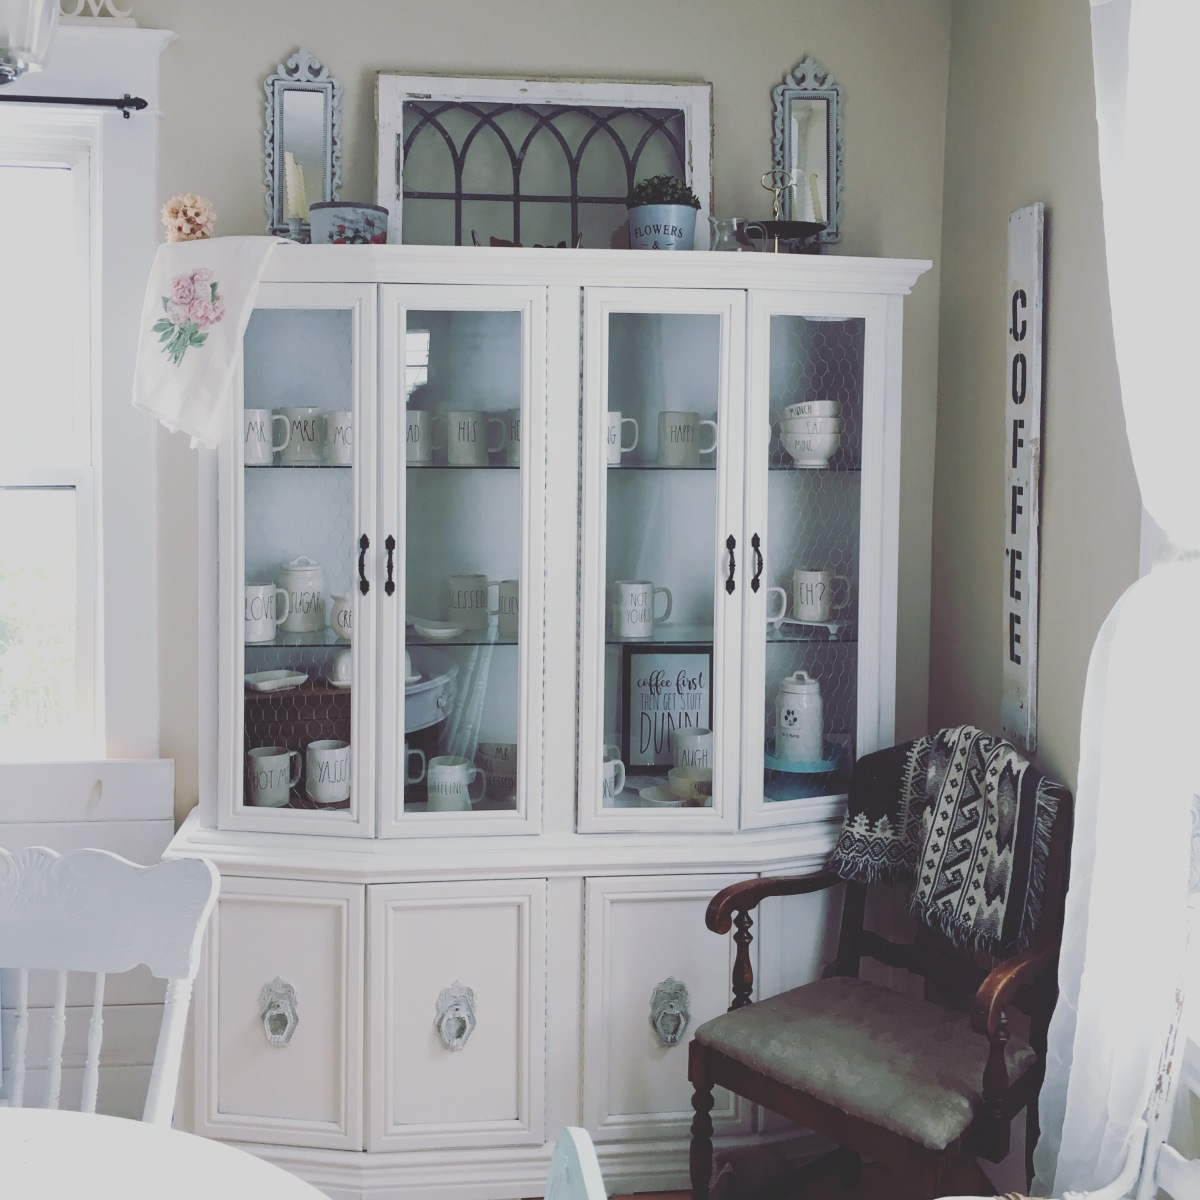 China Cabinet before & Progress.